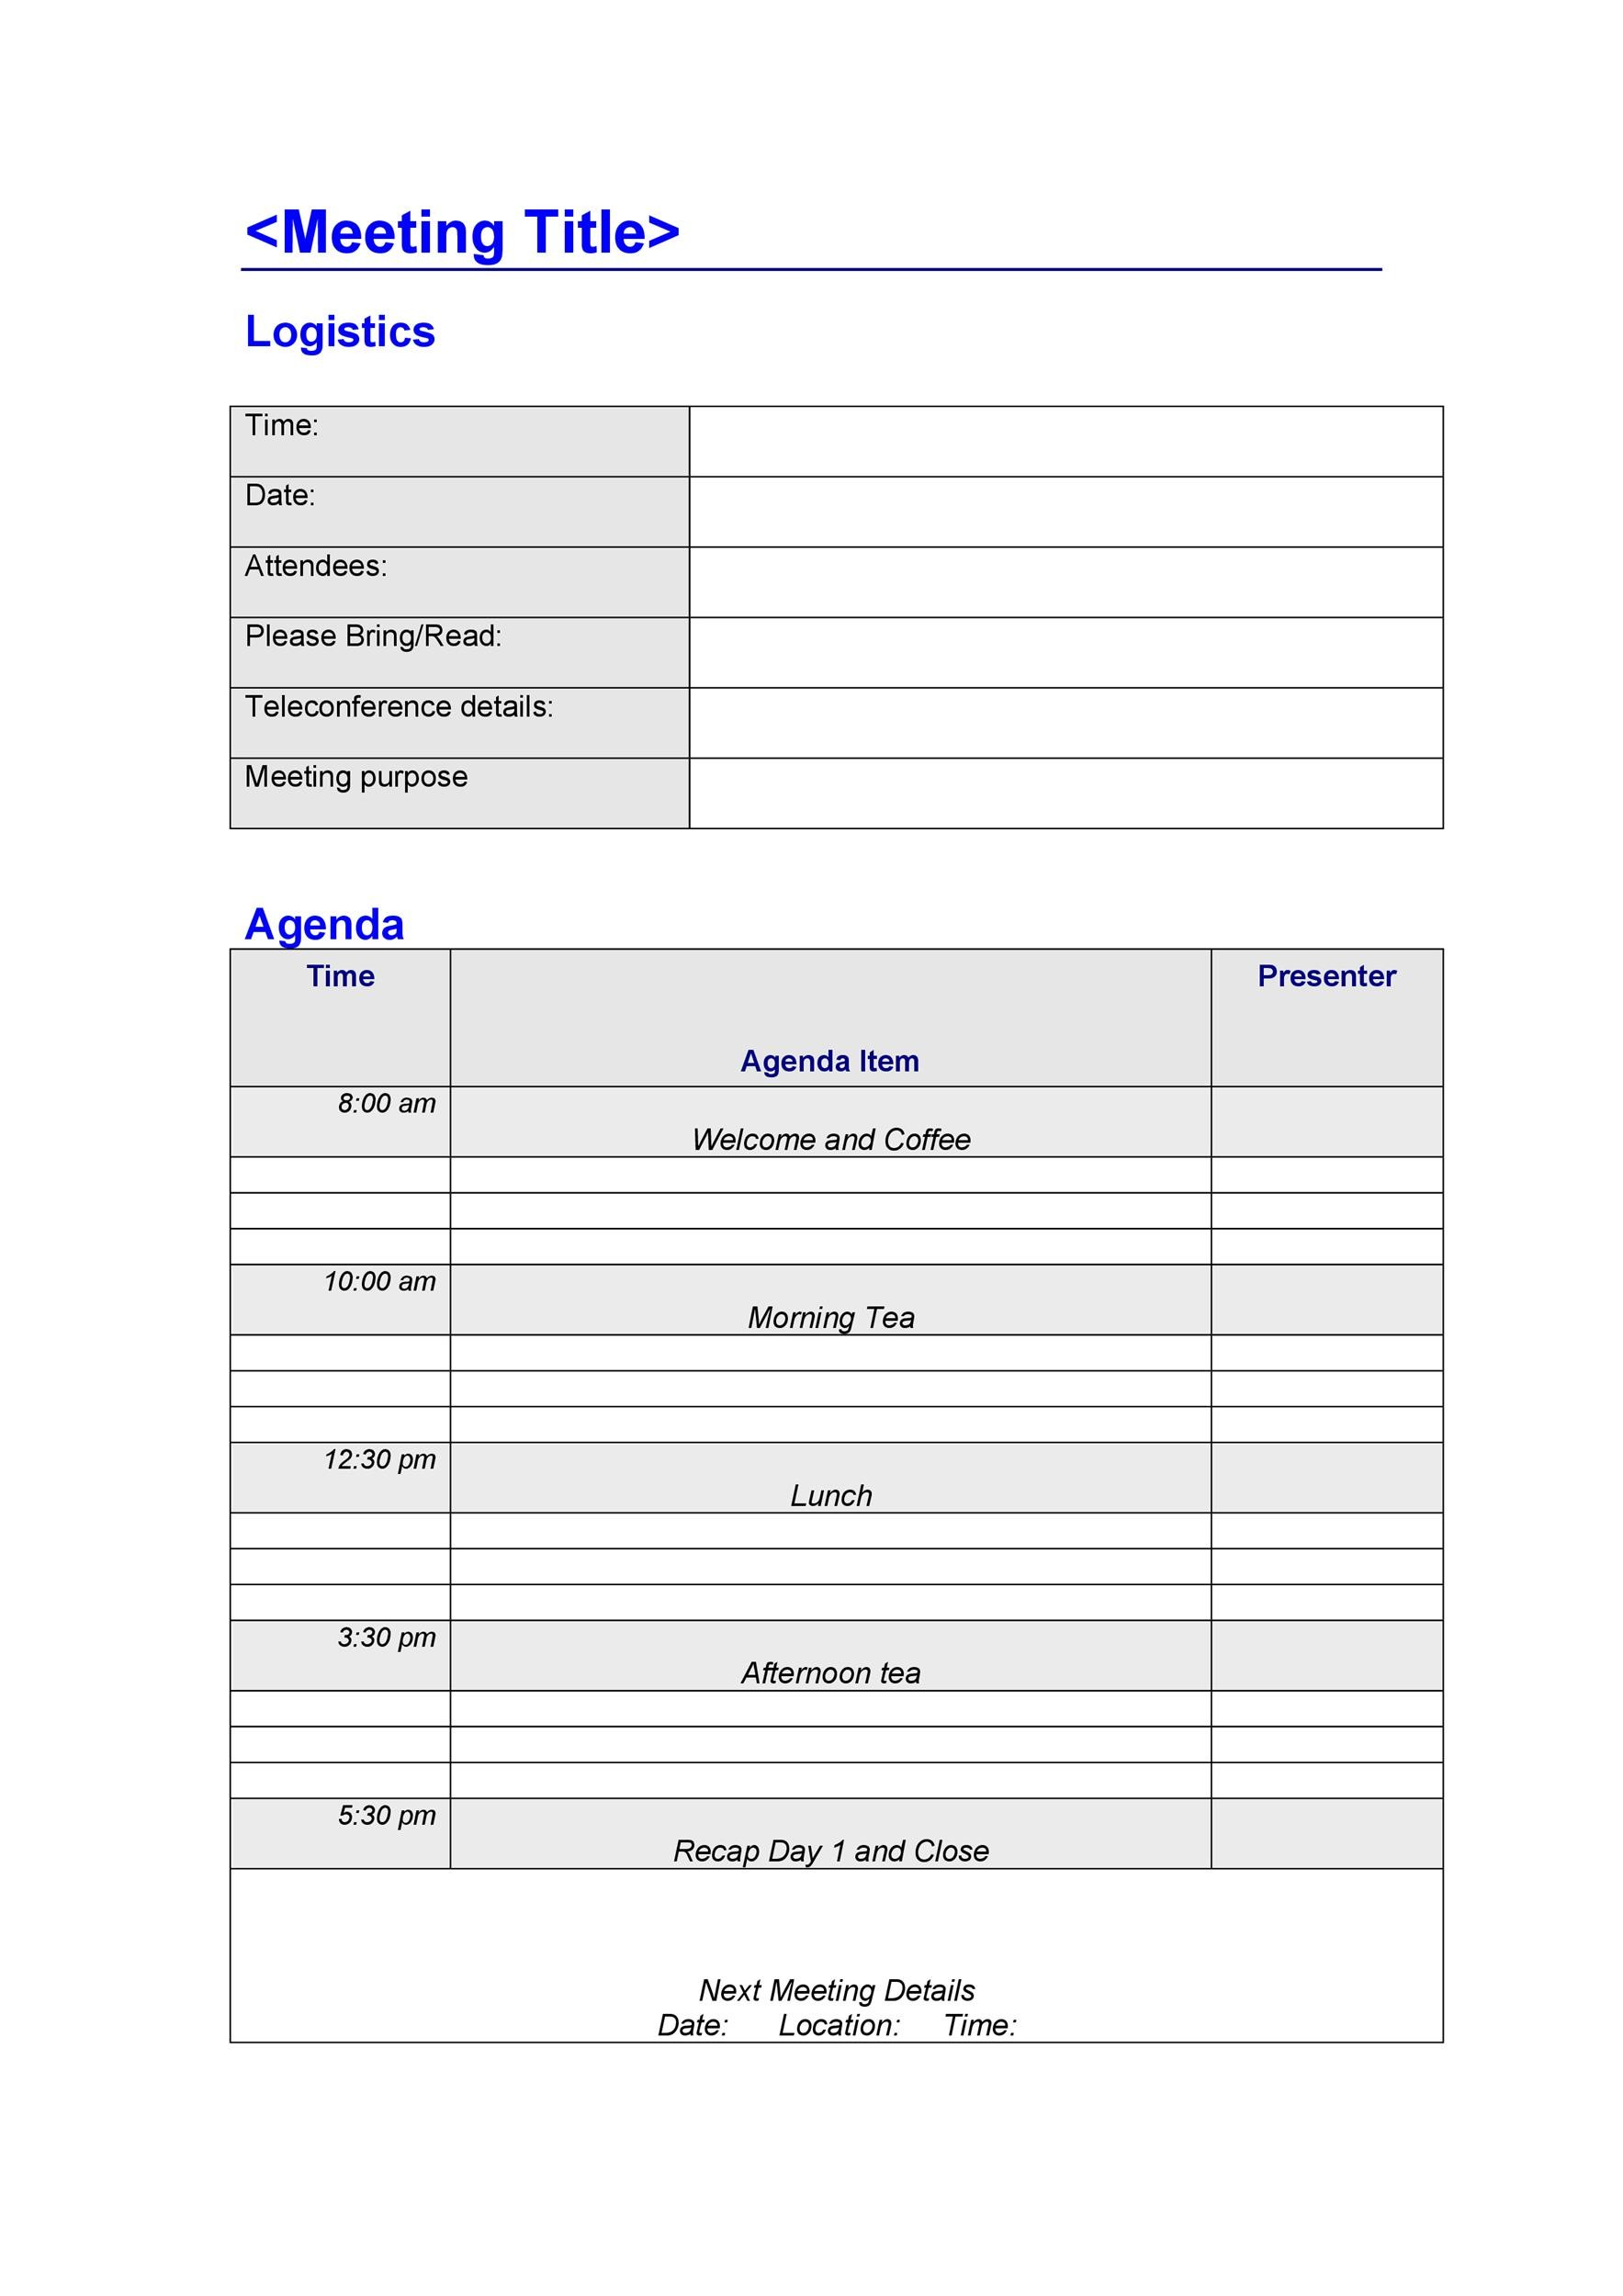 Agenda Examples Sample Project Manager Team Meeting Agenda Free